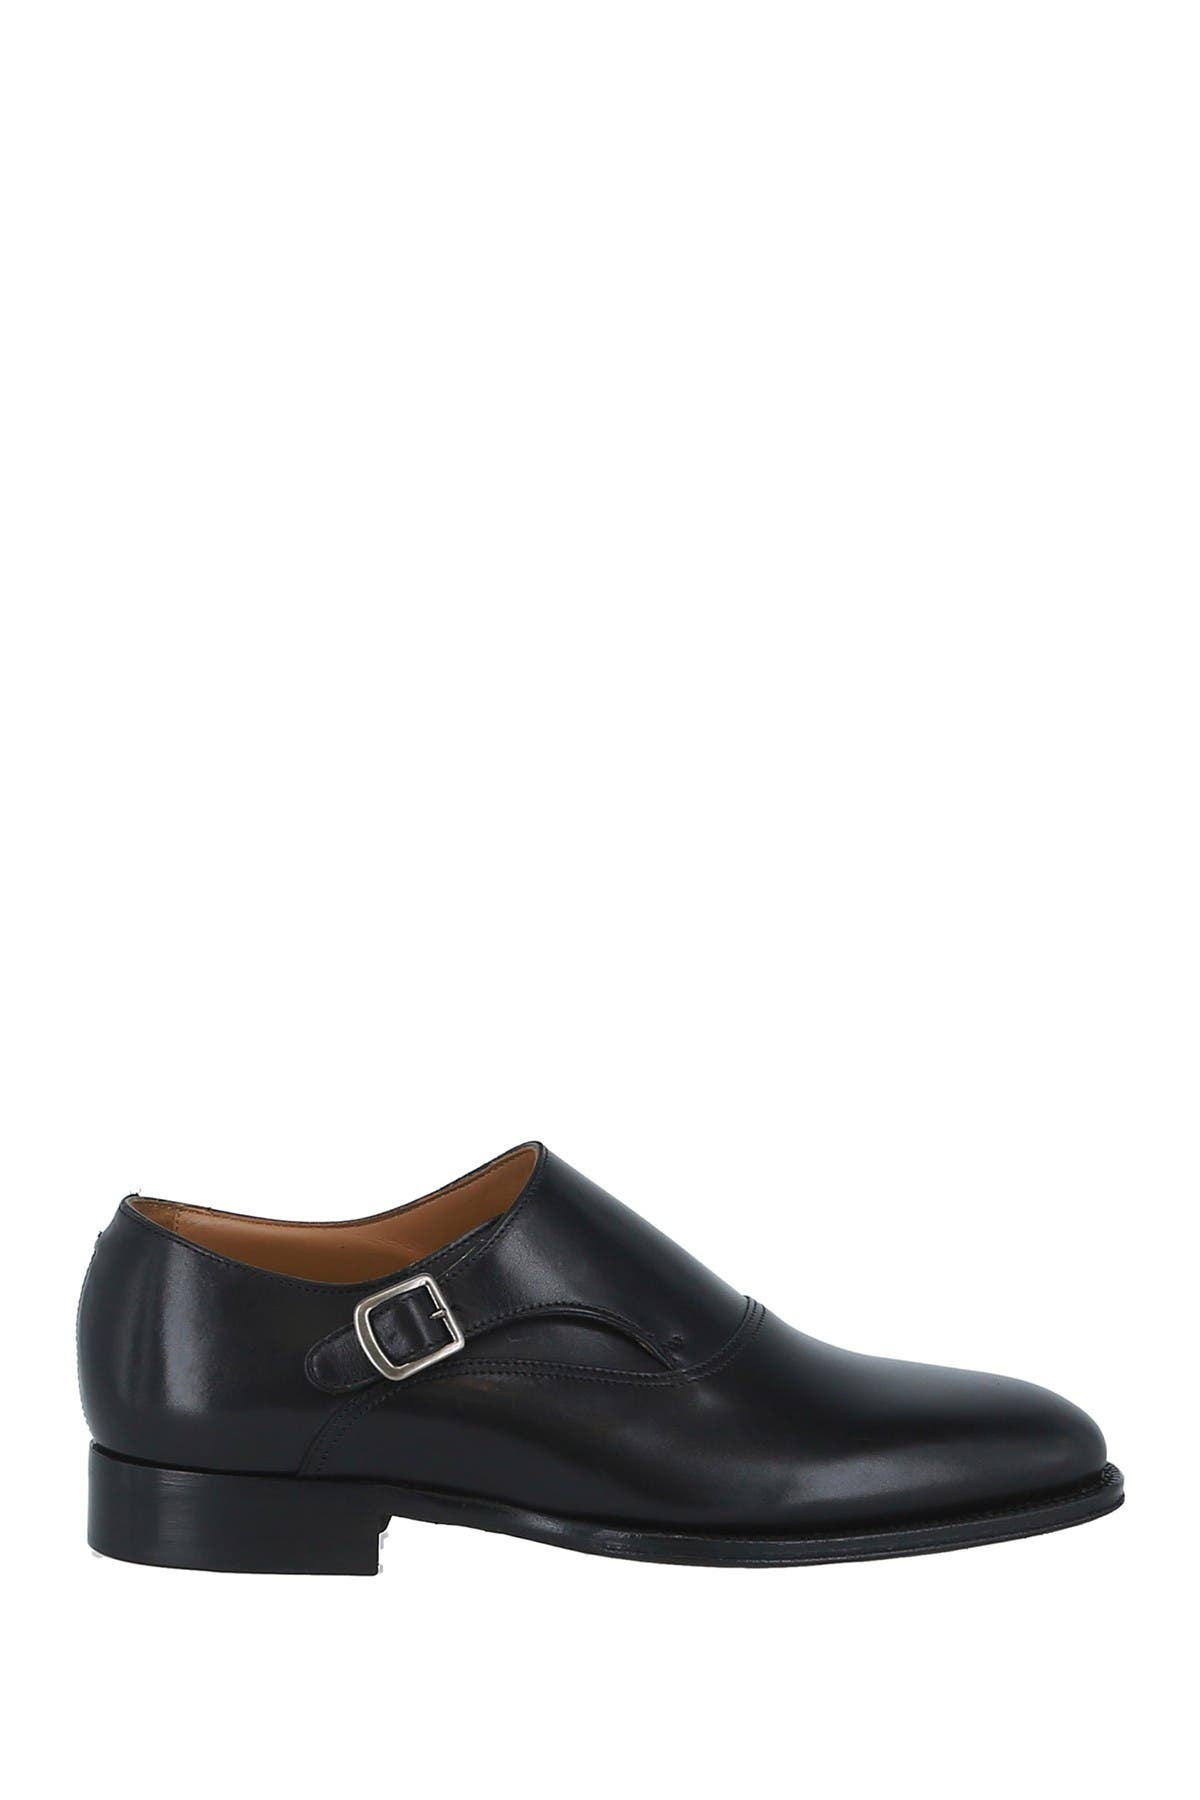 Image of dunhill Plain Toe Monk Strap Loafer